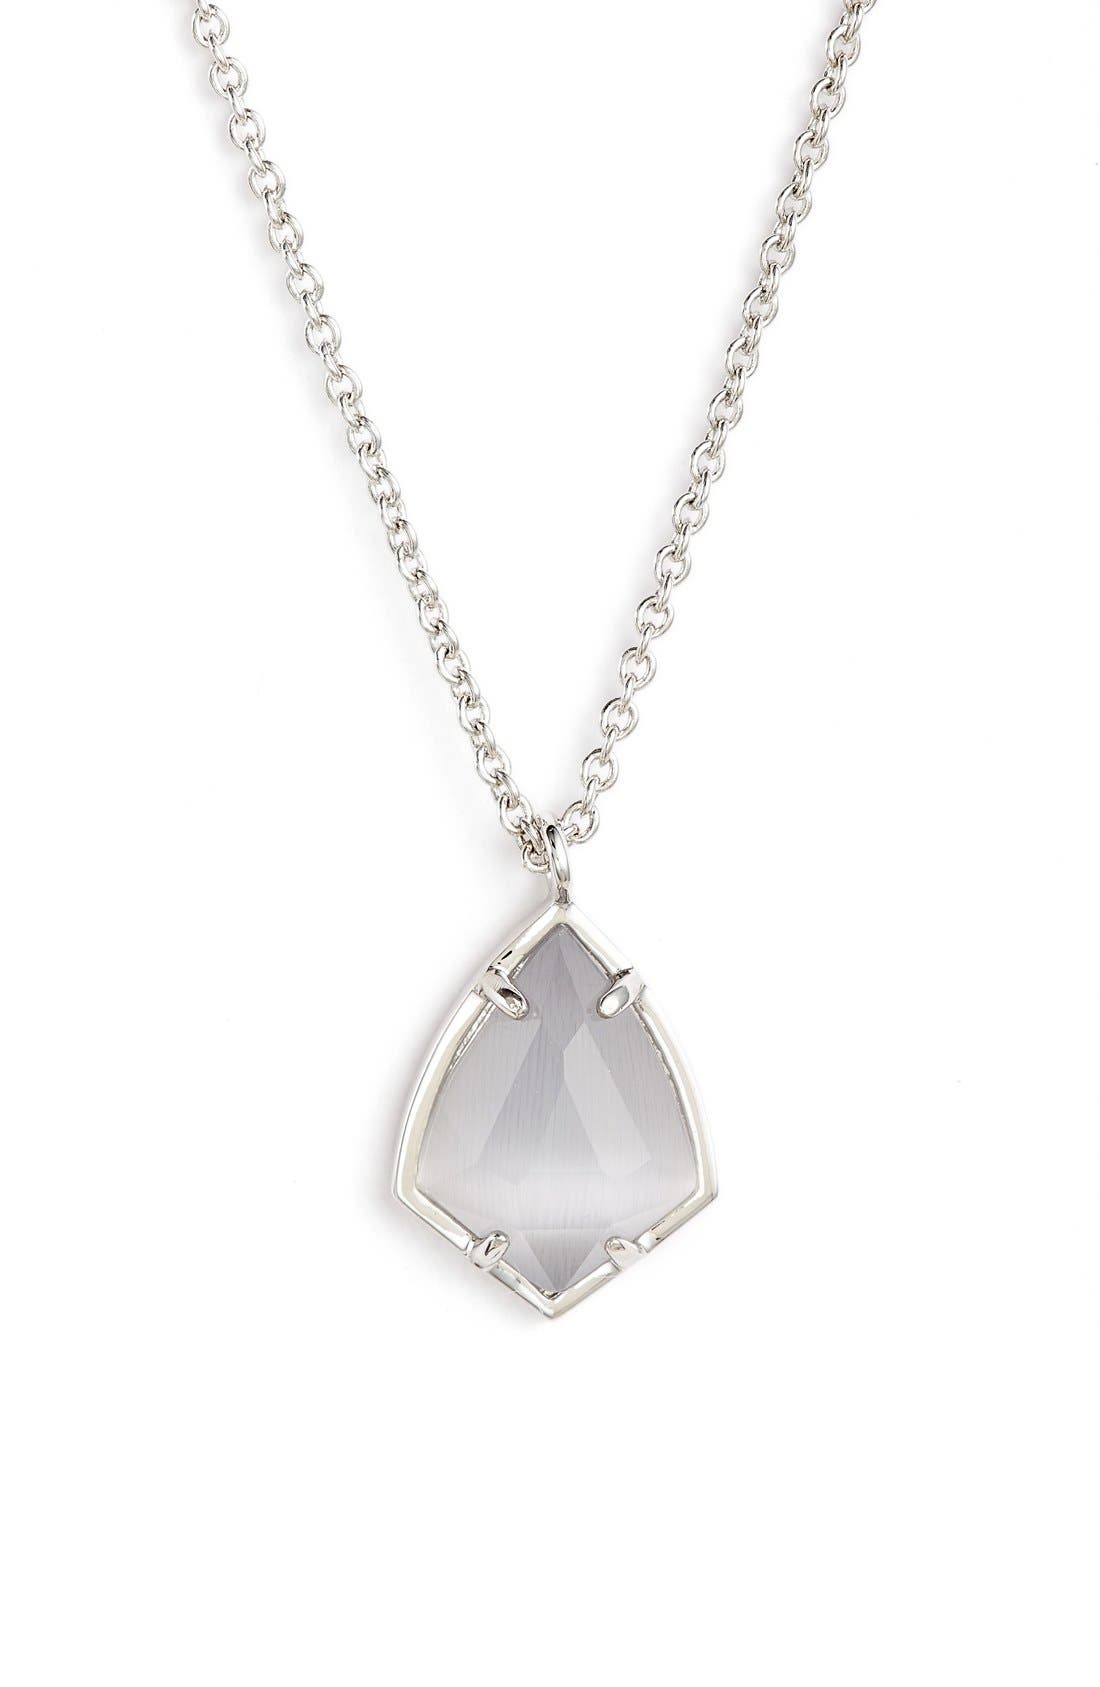 Alternate Image 1 Selected - Kendra Scott 'Cory' Semiprecious Stone Pendant Necklace